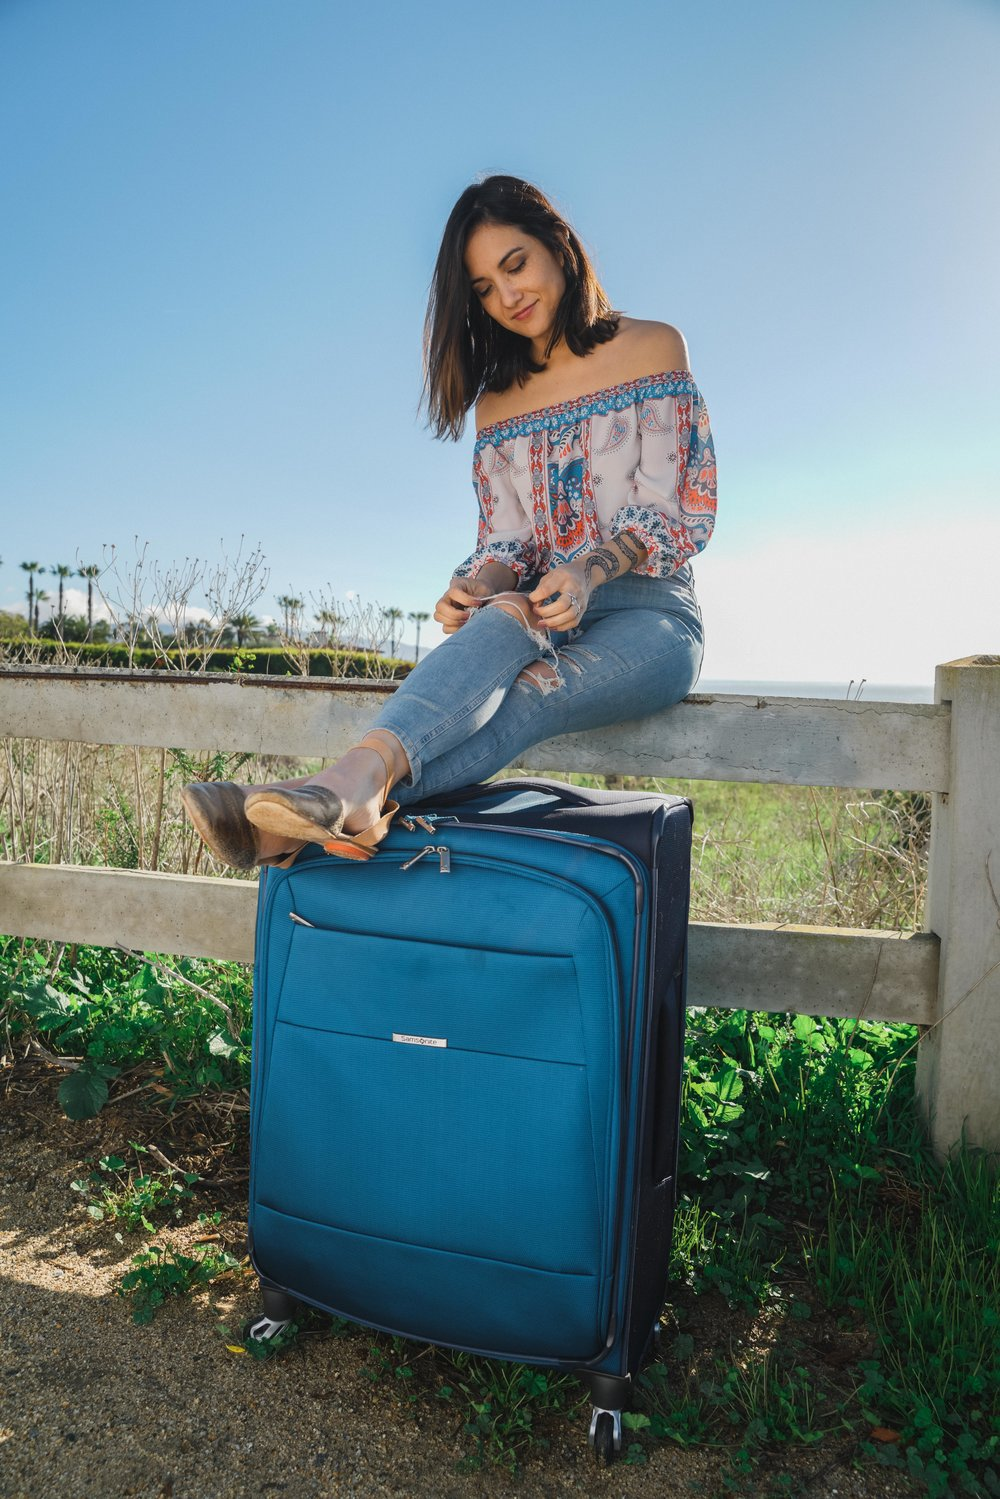 Benita Robledo by the beach travel with suitcase